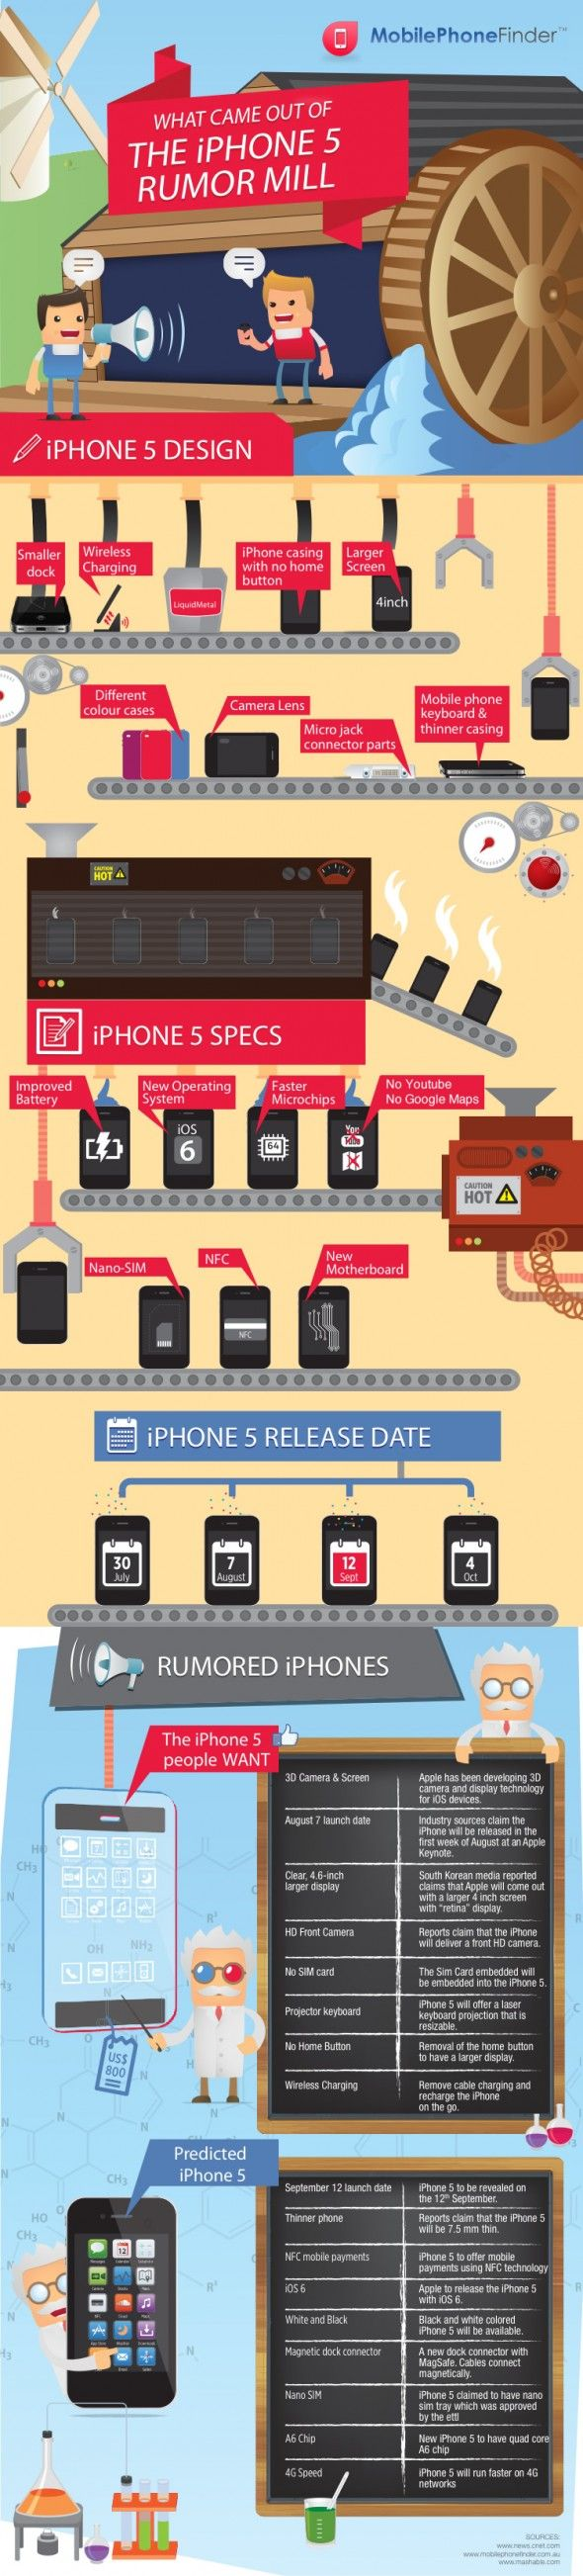 INFOGRAPHIC: WHAT CAME OUT OF THE IPHONE 5 RUMOR MILL